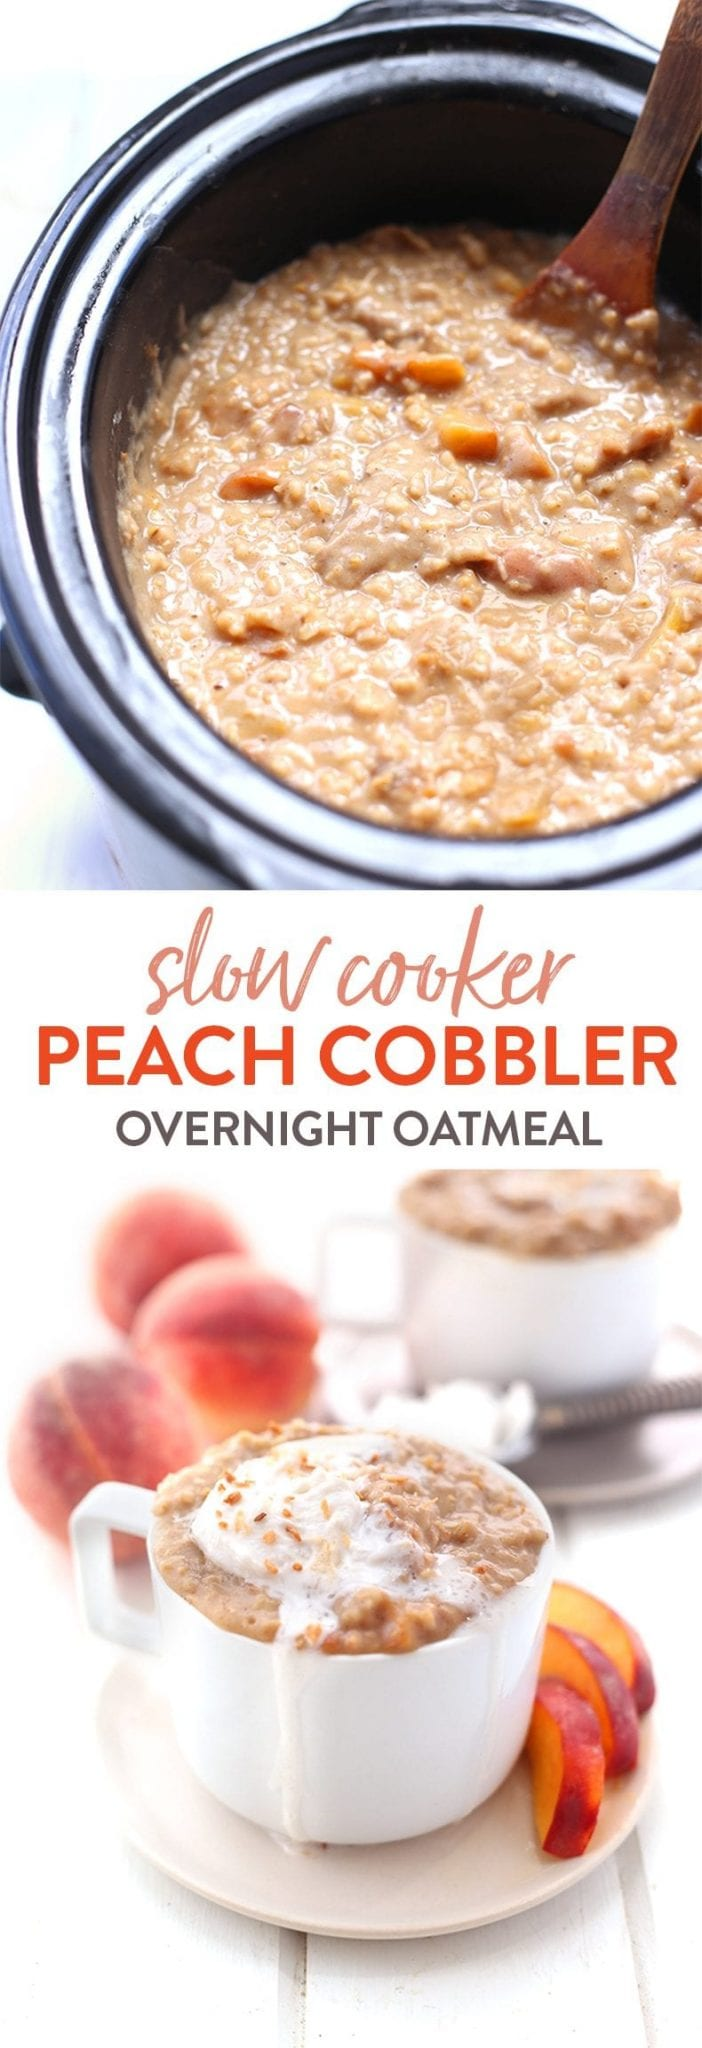 A healthy breakfast recipe that cooks overnight on your slow cooker - you will love this peach cobbler overnight oatmeal for breakfast all through the late summer while peaches are in season!